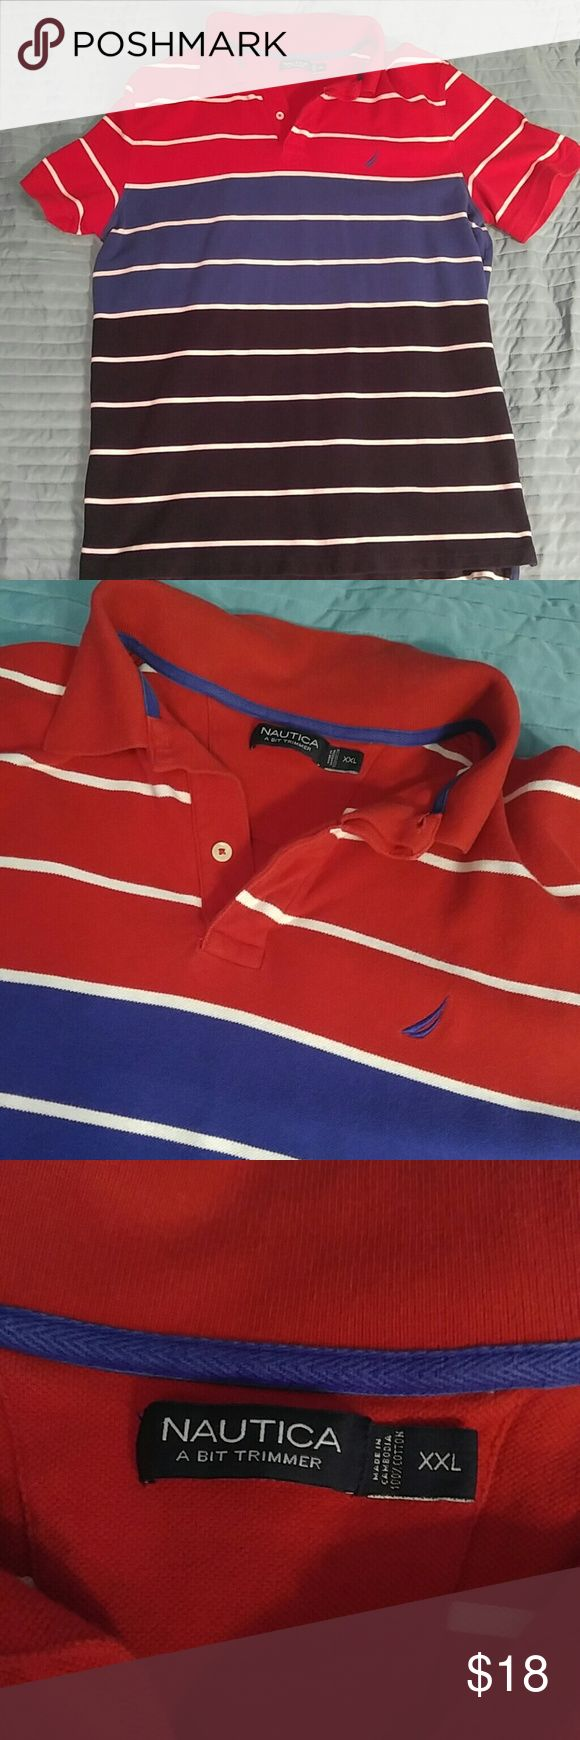 """Nautica tri color striped polo shirt XXL Beautiful blue and red Nautica polo in great shape. No fade to the color at all! Size is XXL but is labeled """"a bit trimmer"""" so will work with XL as well. Nautica Shirts Polos"""